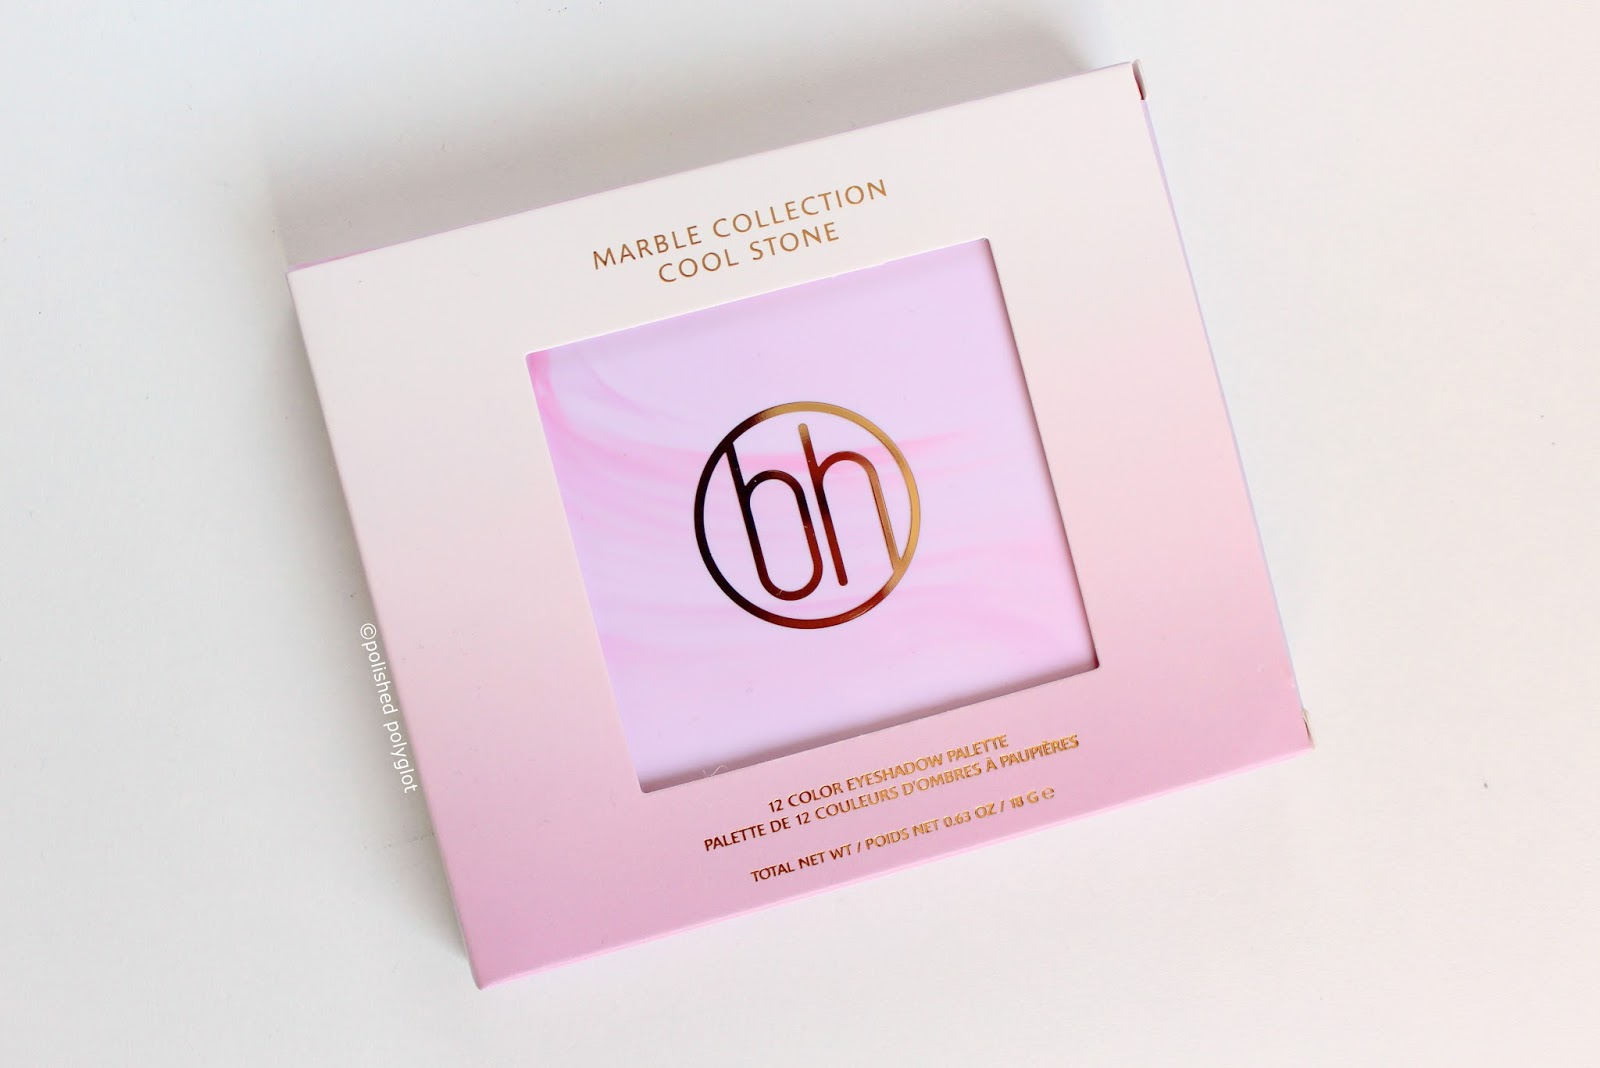 Makeup │bh Cosmetics Marble Collection Cool Stone Motd